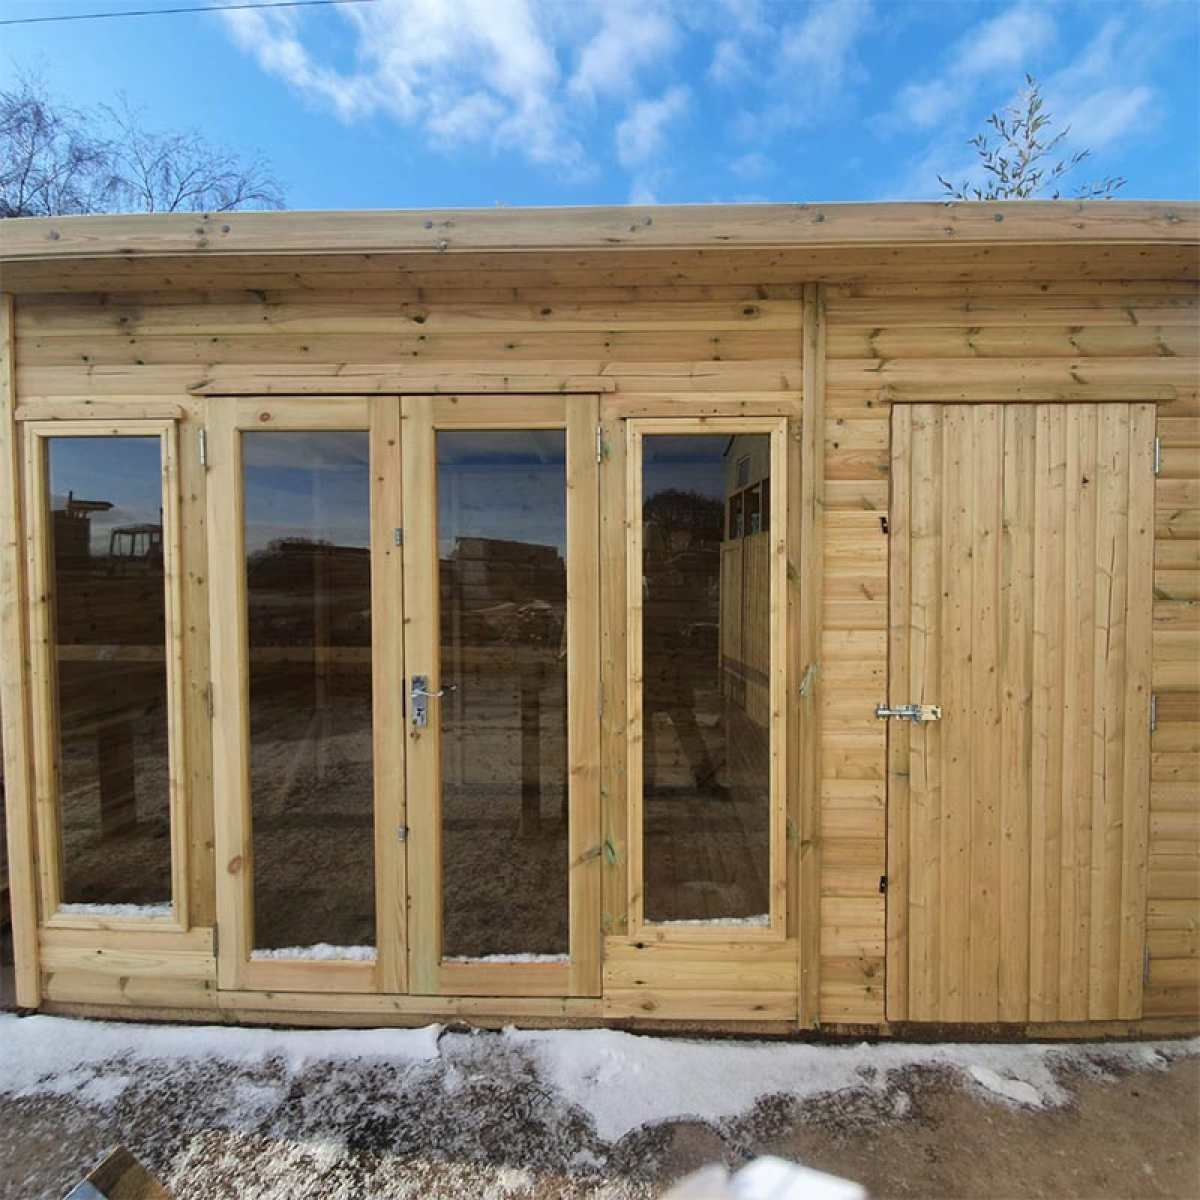 oxford outbuilding websterstimber 800by800 Image by Websters Timber